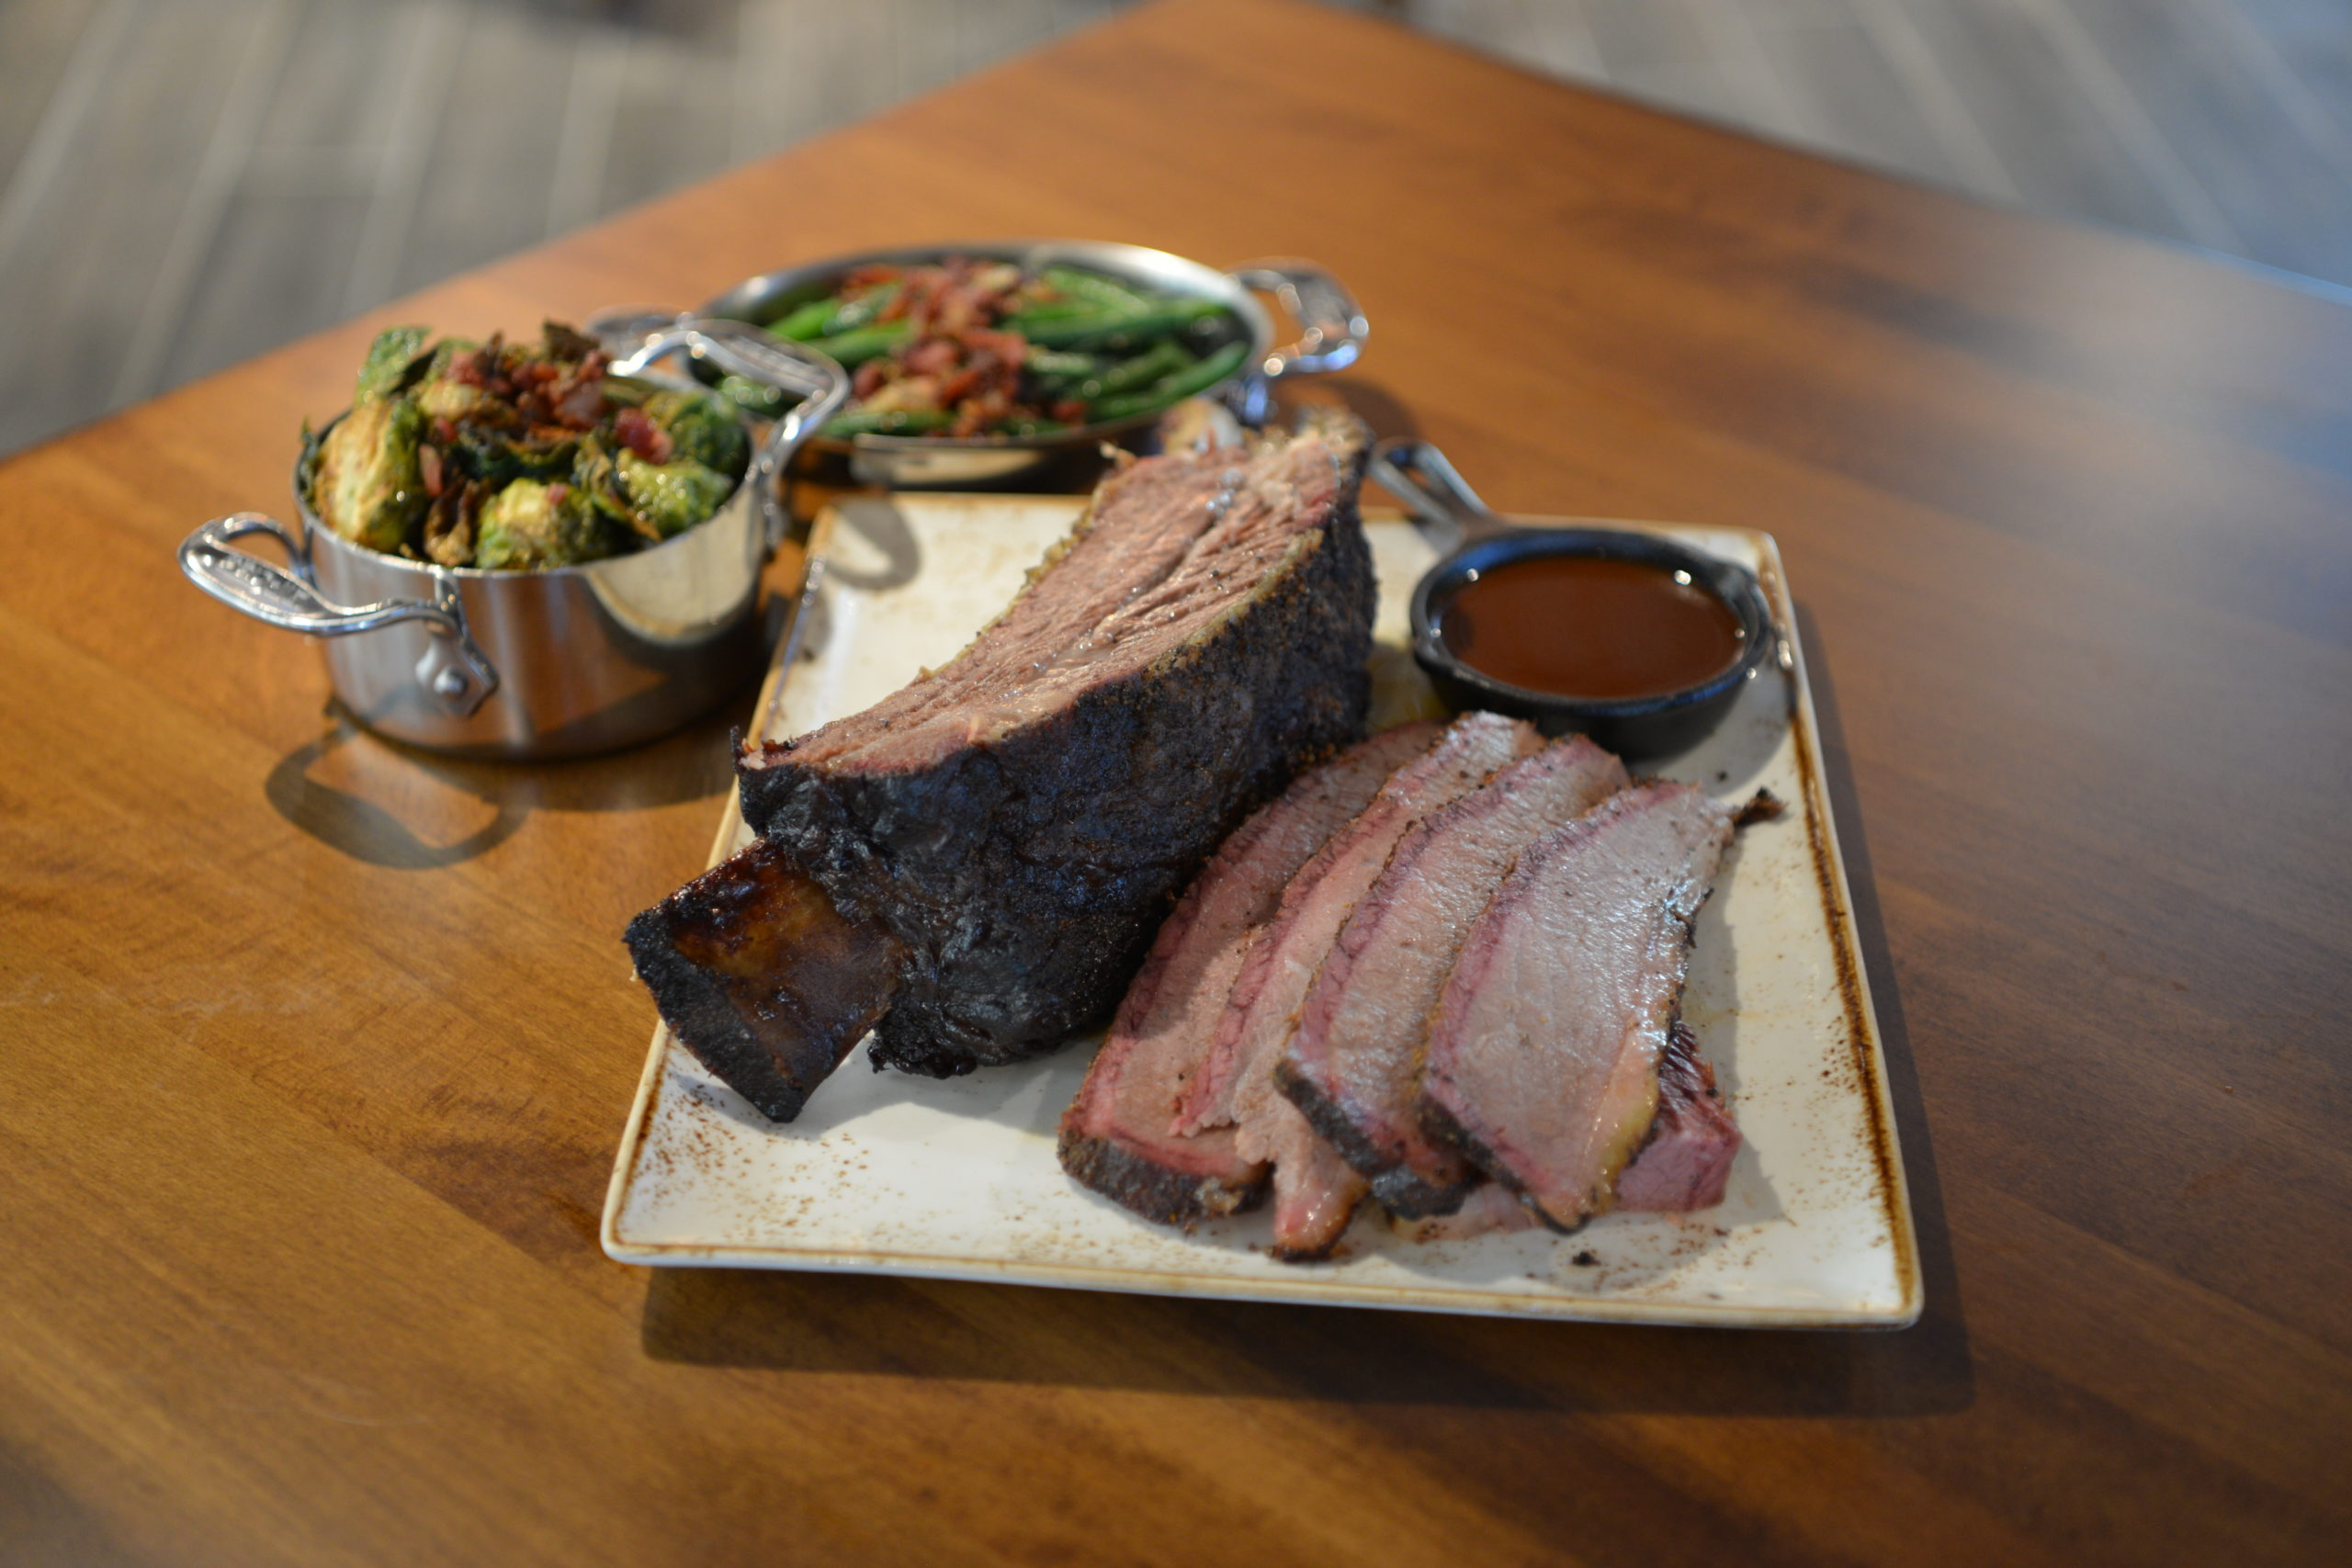 Barbecue is always on Ronnie Killen's menu including that of Killen's.